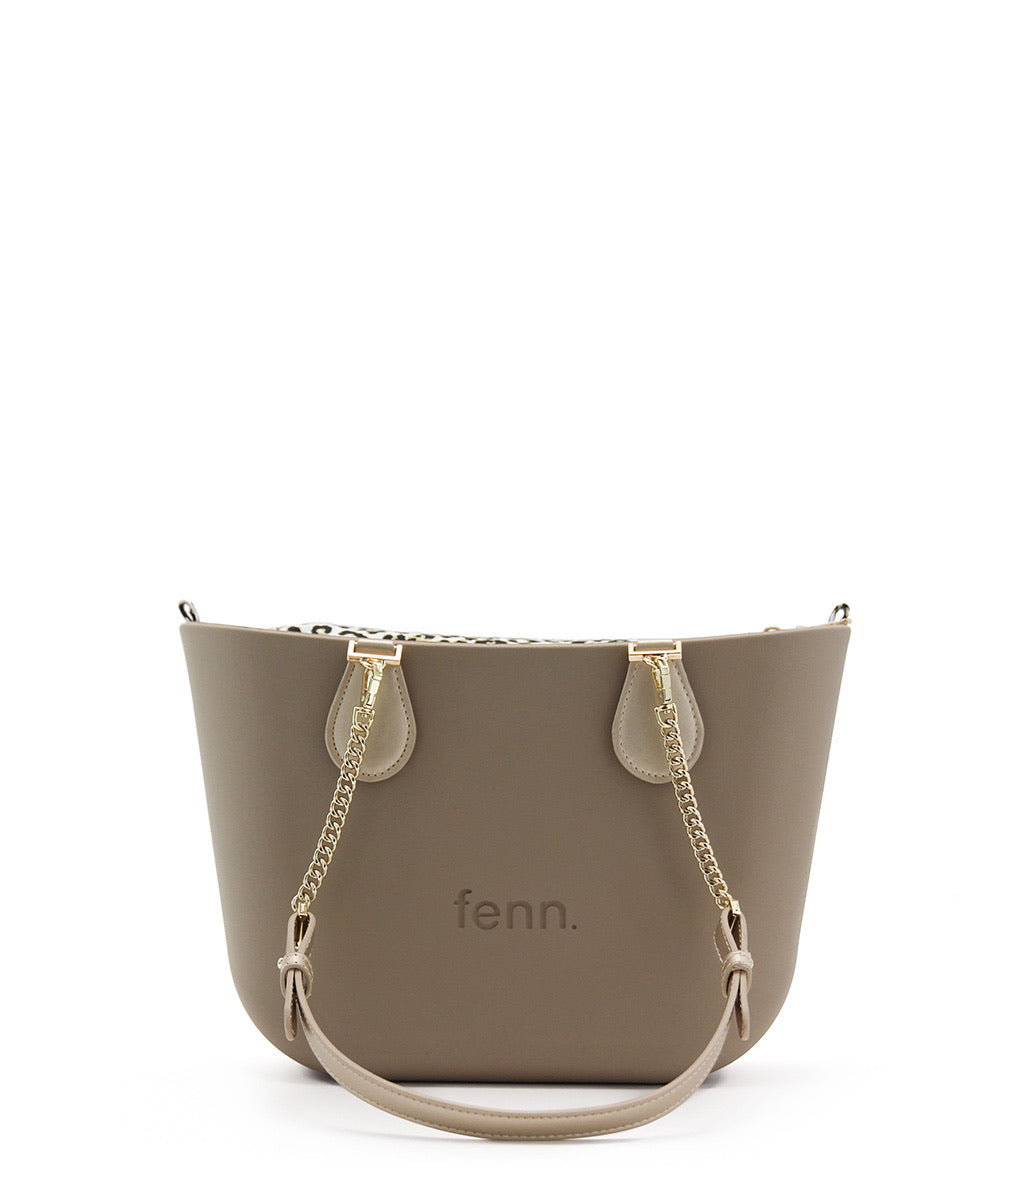 New Petite Fenn bag - Stone with Gold/gold chain handle and leopard print inner